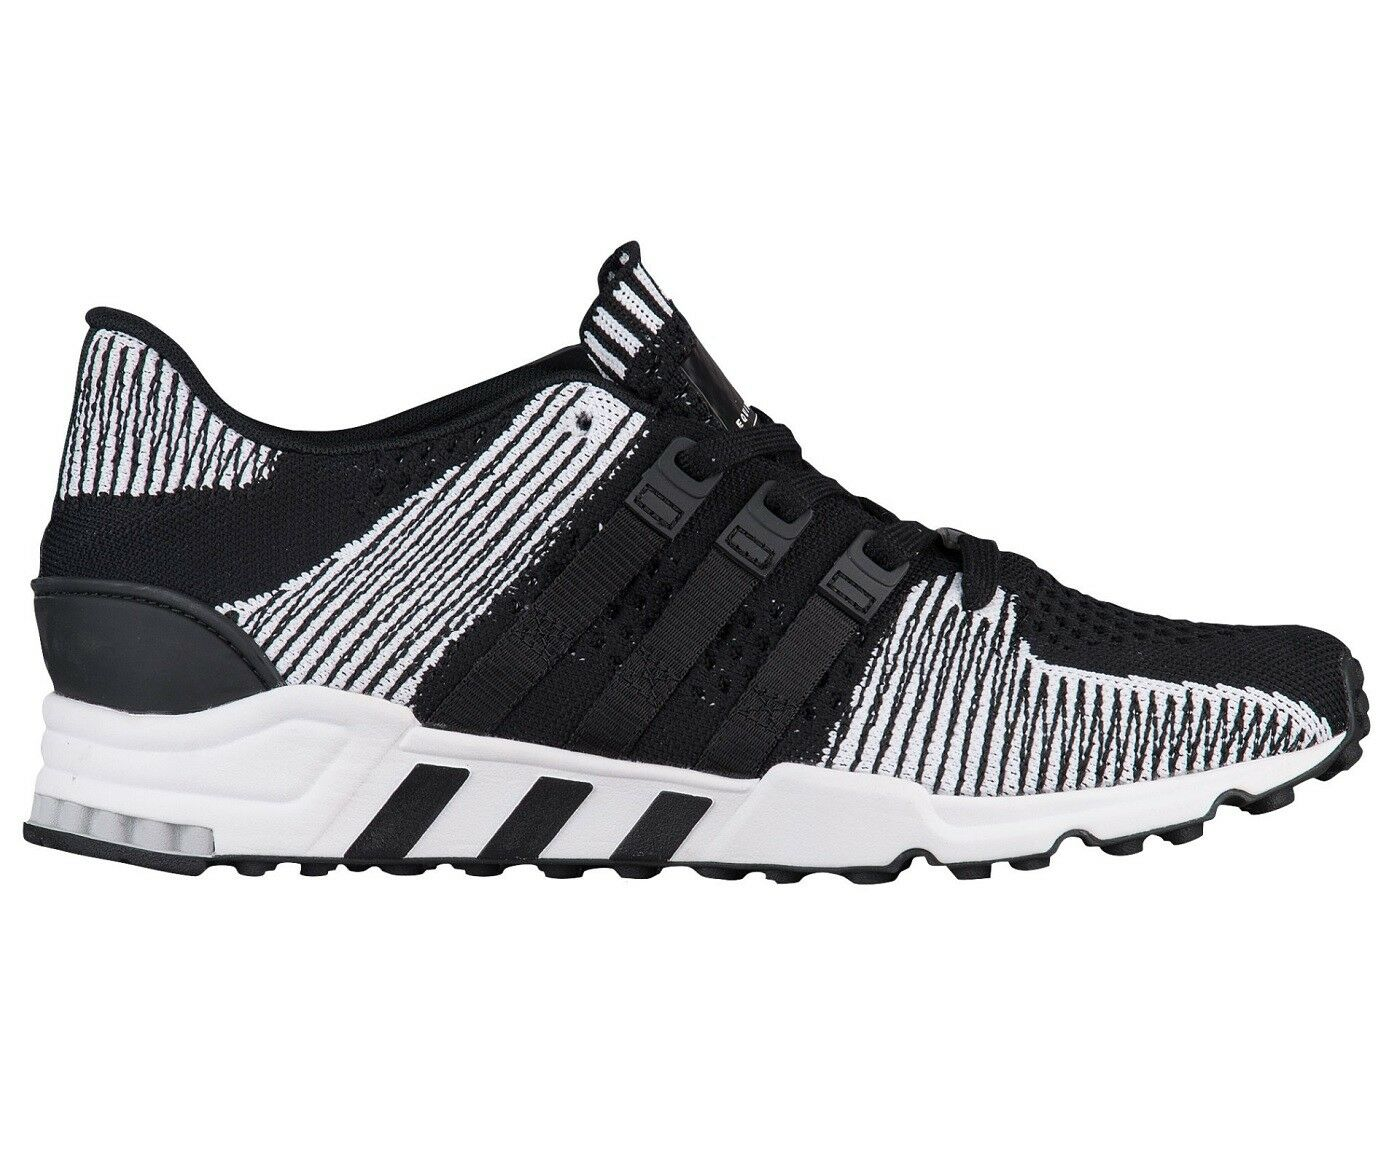 Adidas EQT Support RF Primeknit Mens BY9689 Black White Running shoes Size 11